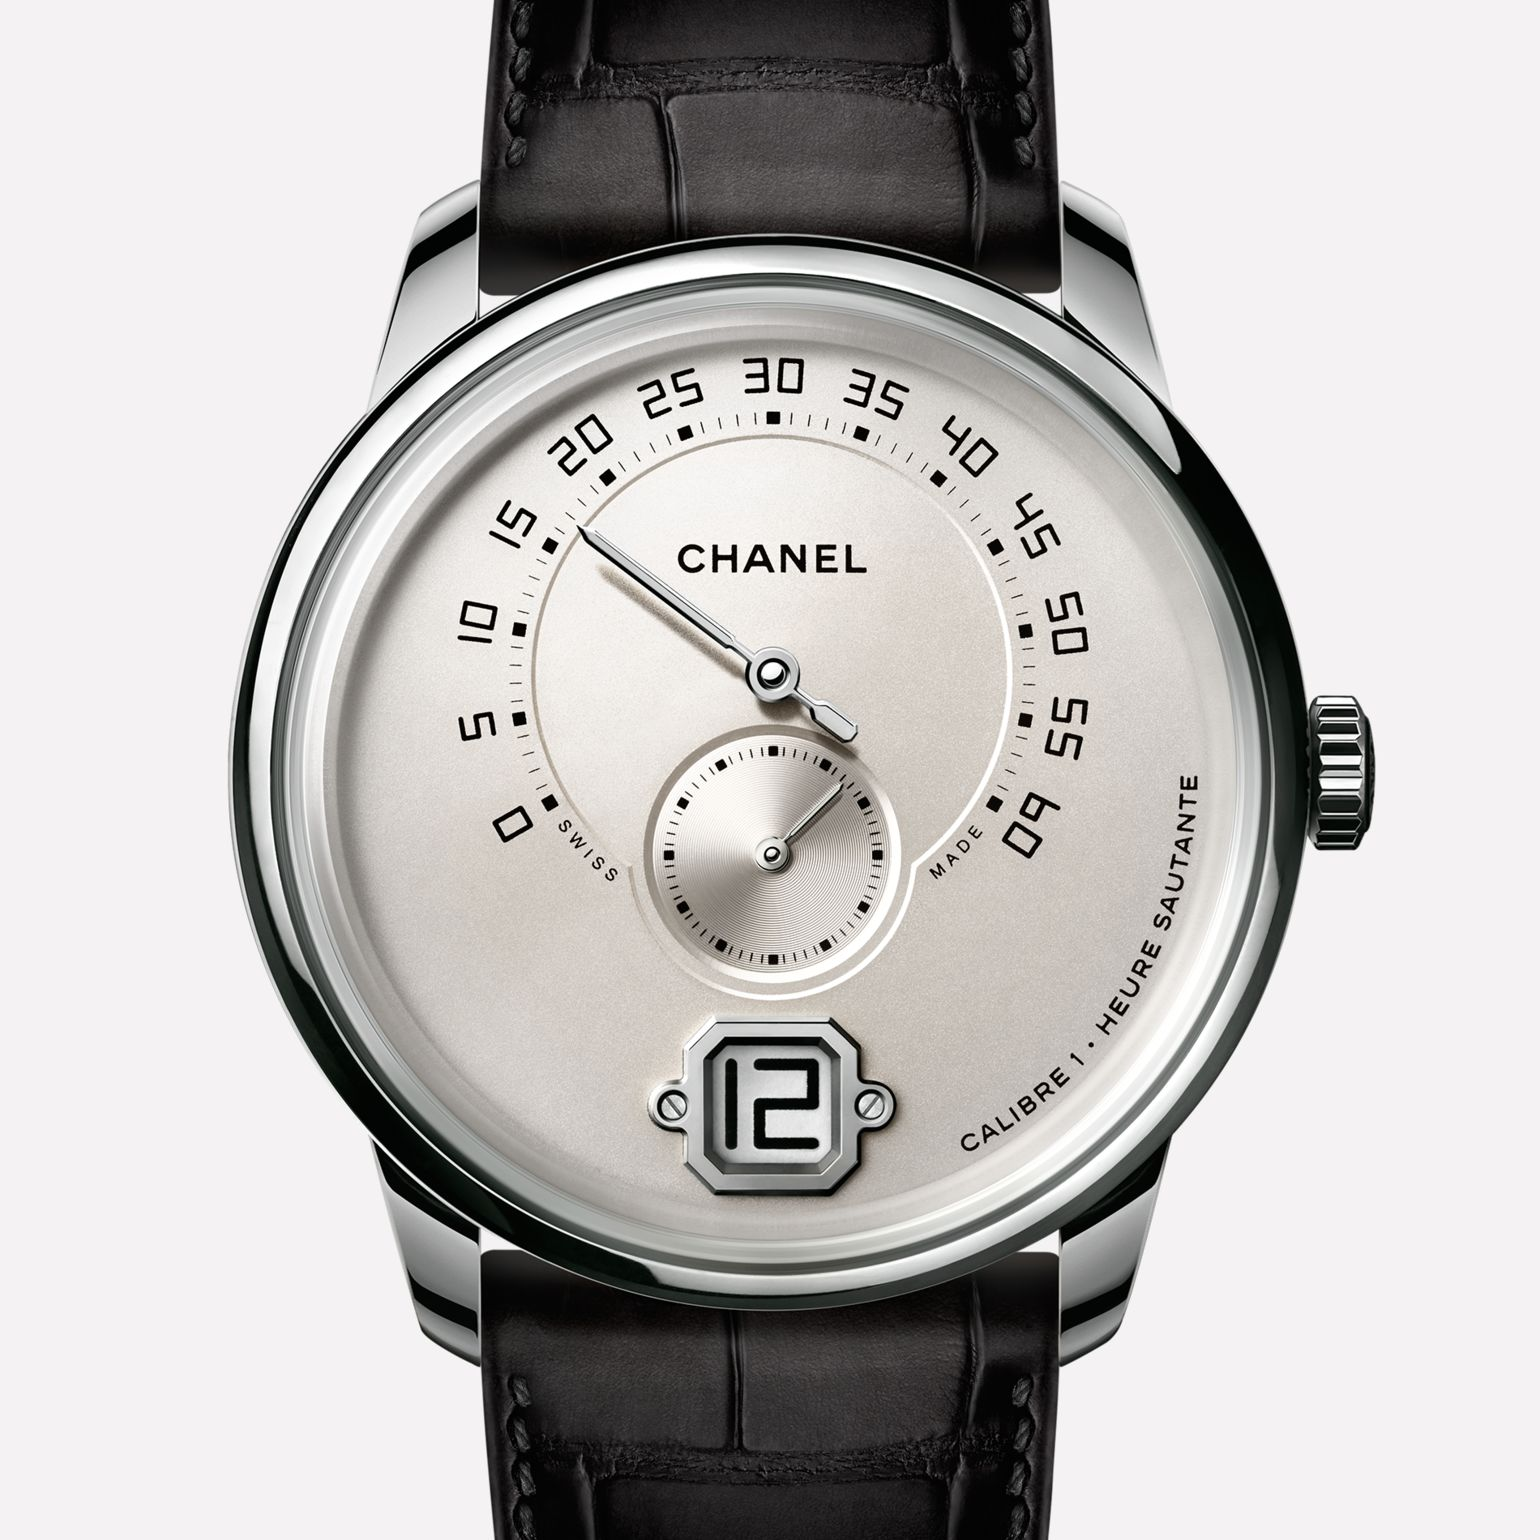 Monsieur de CHANEL White gold, ivory dial with jumping hour, 240° retrograde minutes and small second counter